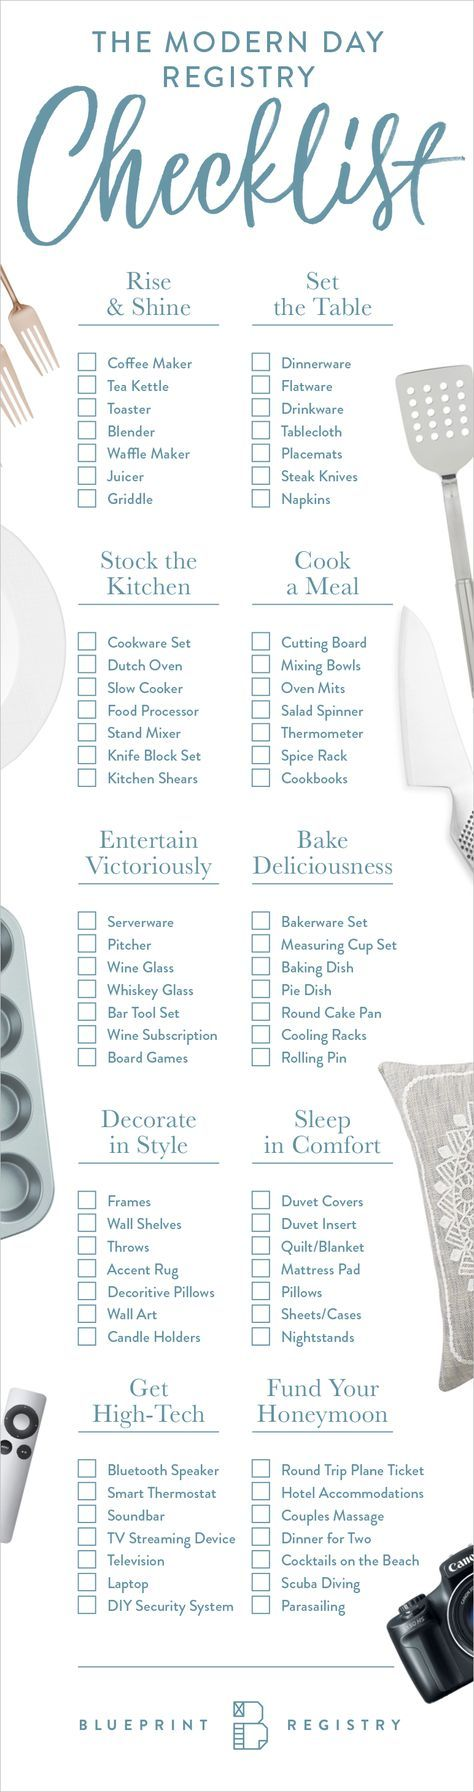 Wedding Gift Registry Checklist : ... Wedding registry list, Wedding gift registry and Wedding registry